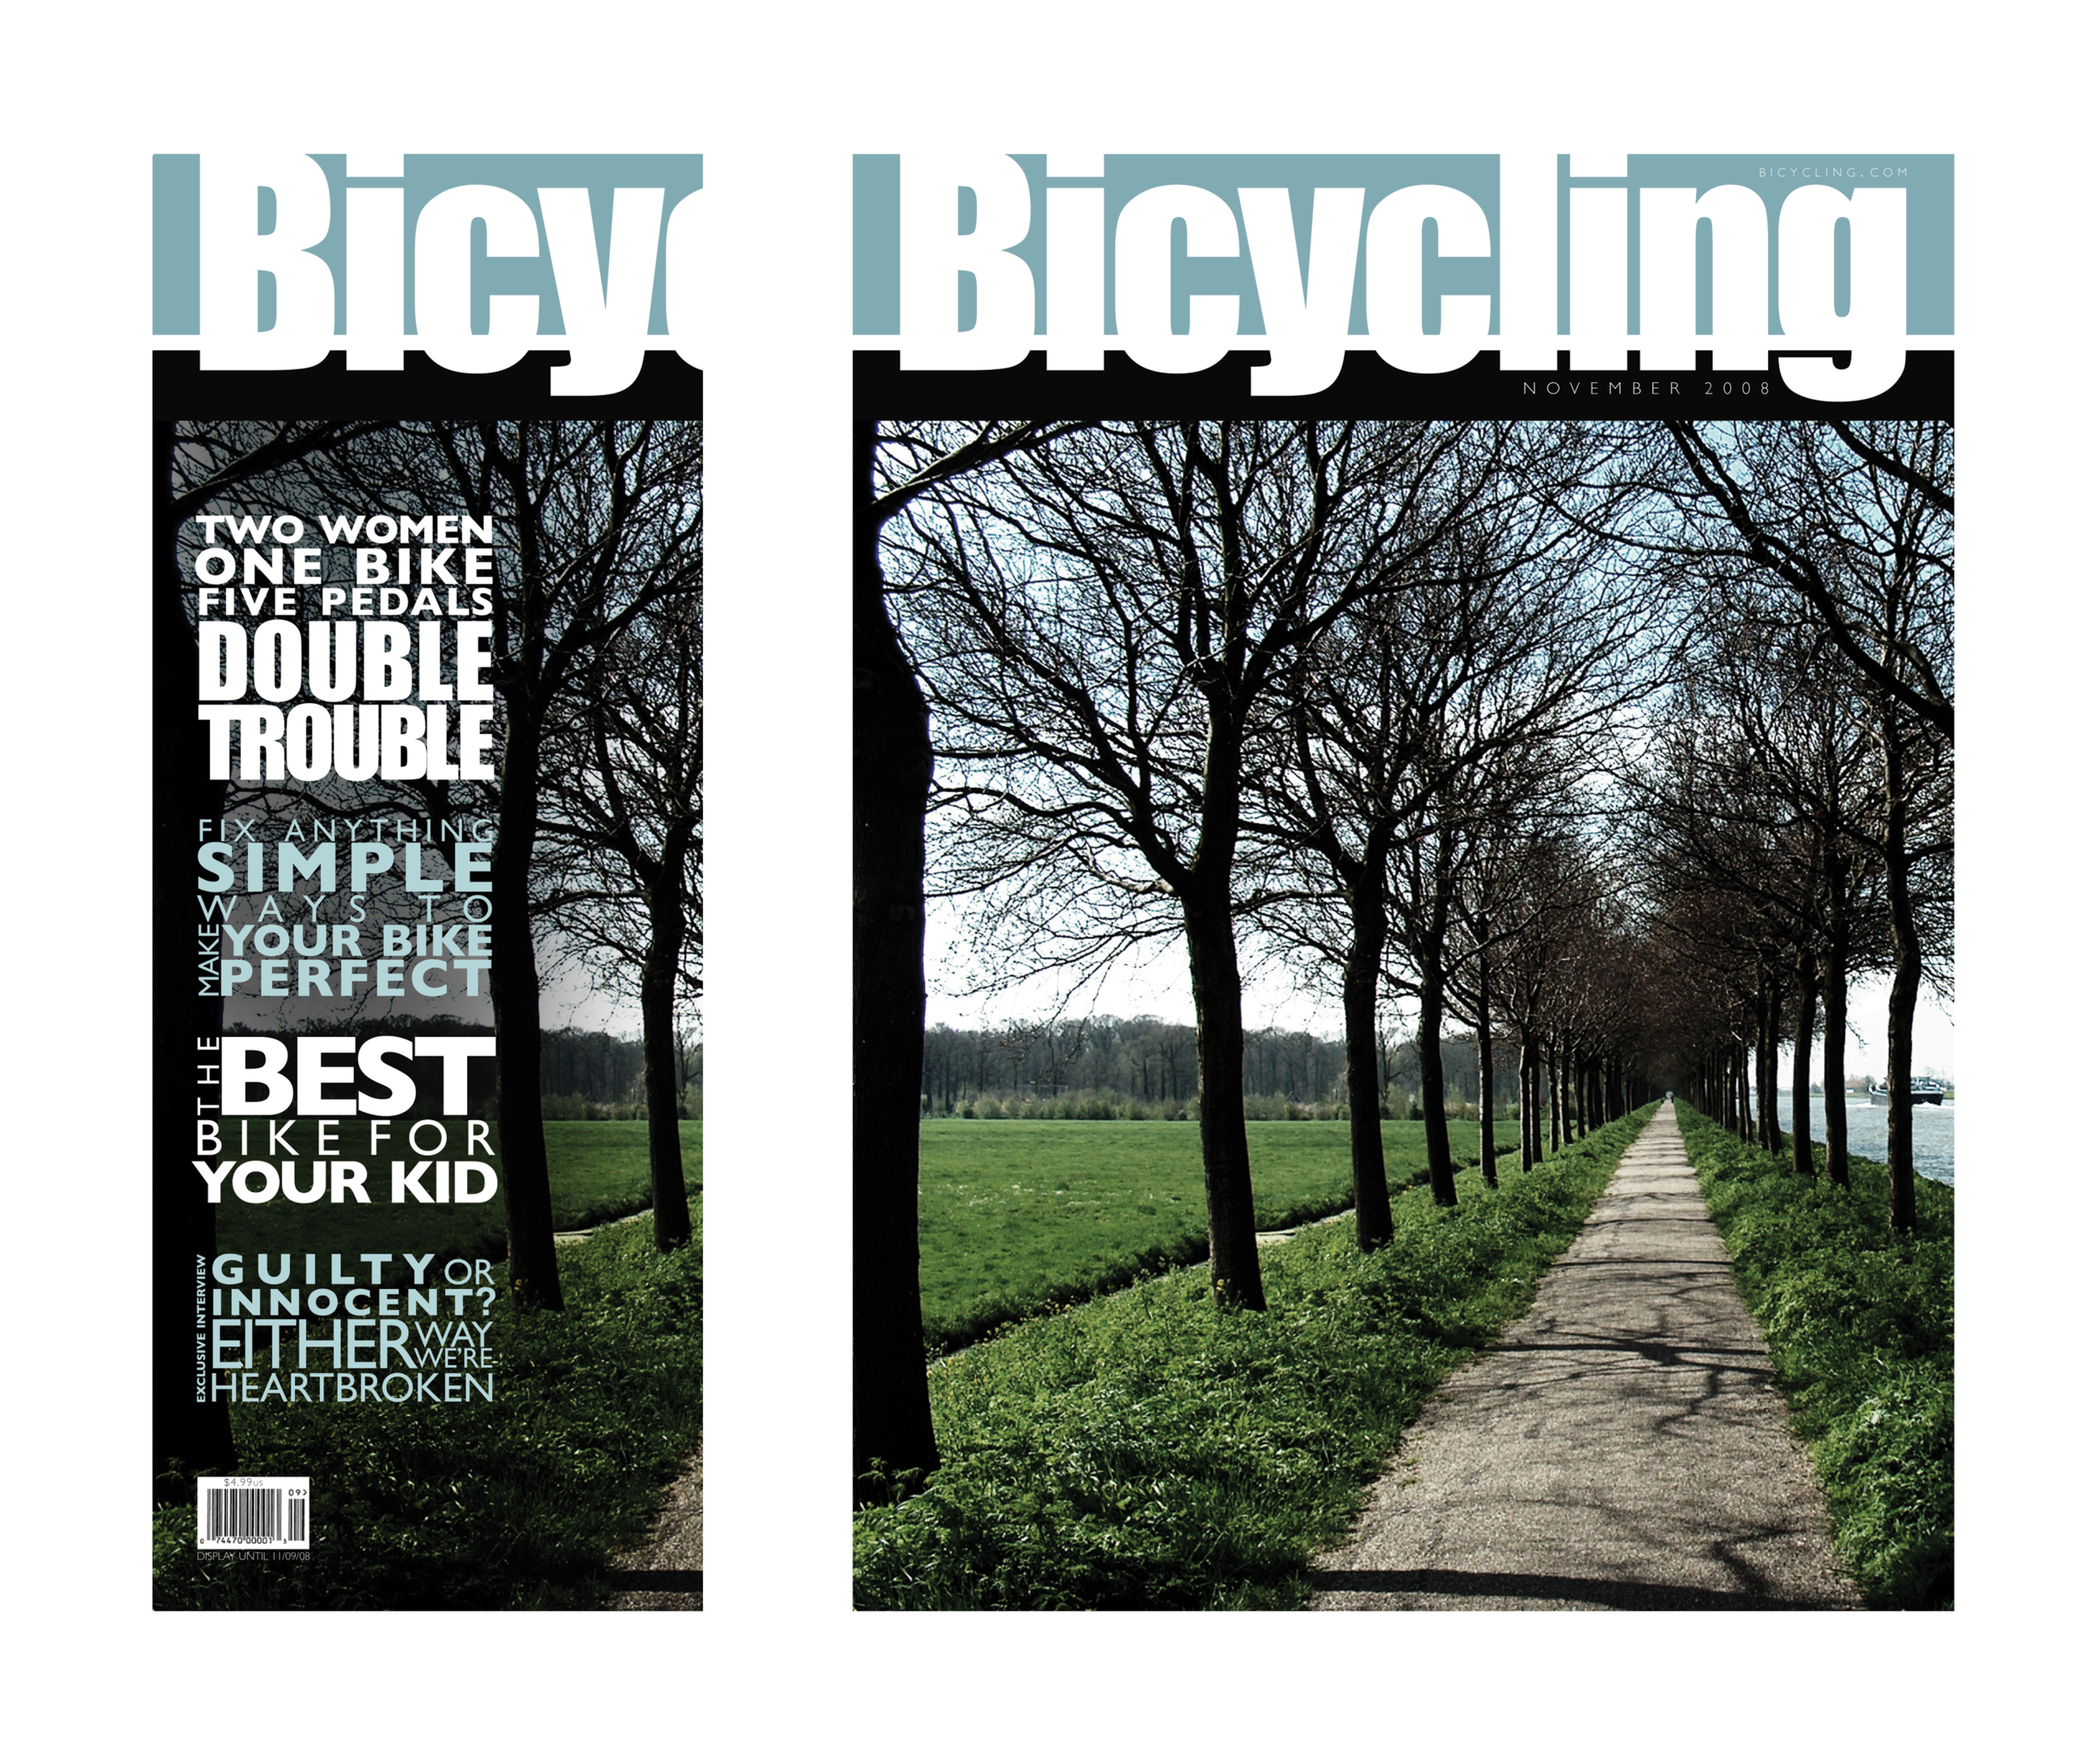 BicyclingCover3.png